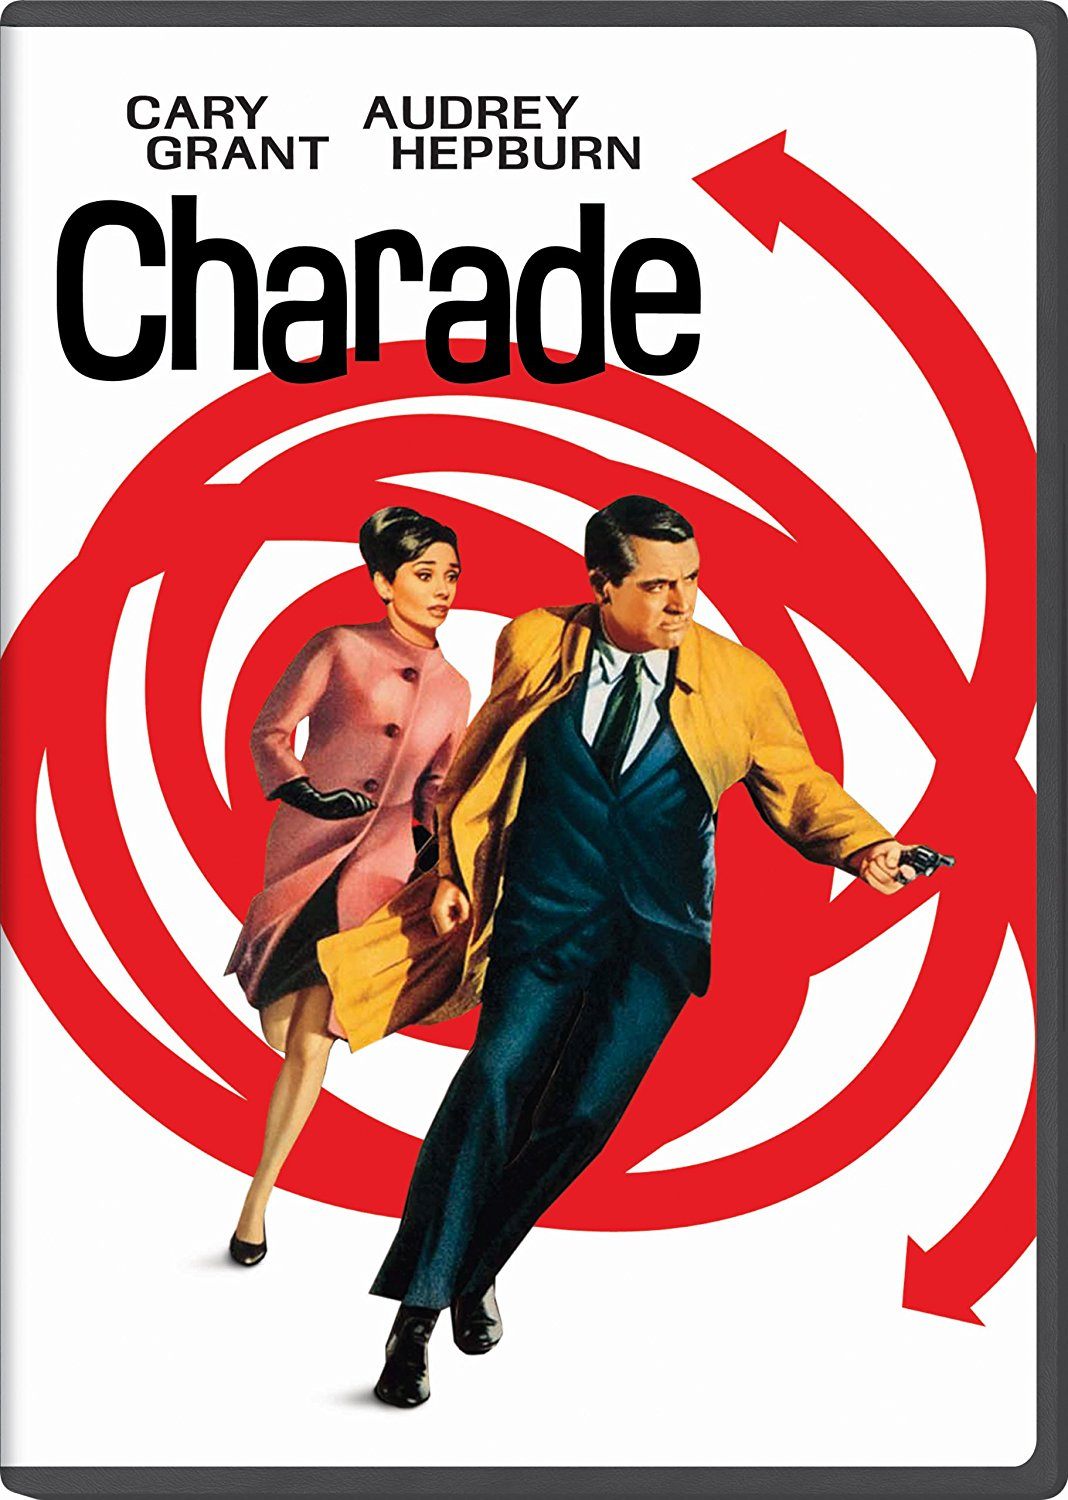 Movie Night at the Garfield Presents: CHARADE